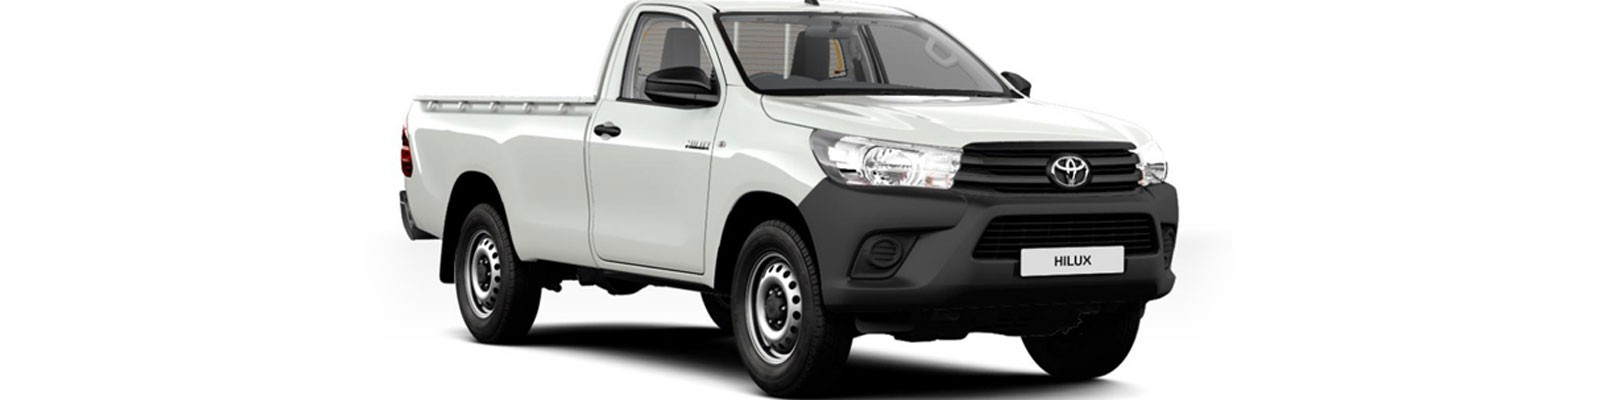 Accessories For Toyota Hilux Single Cab 2016